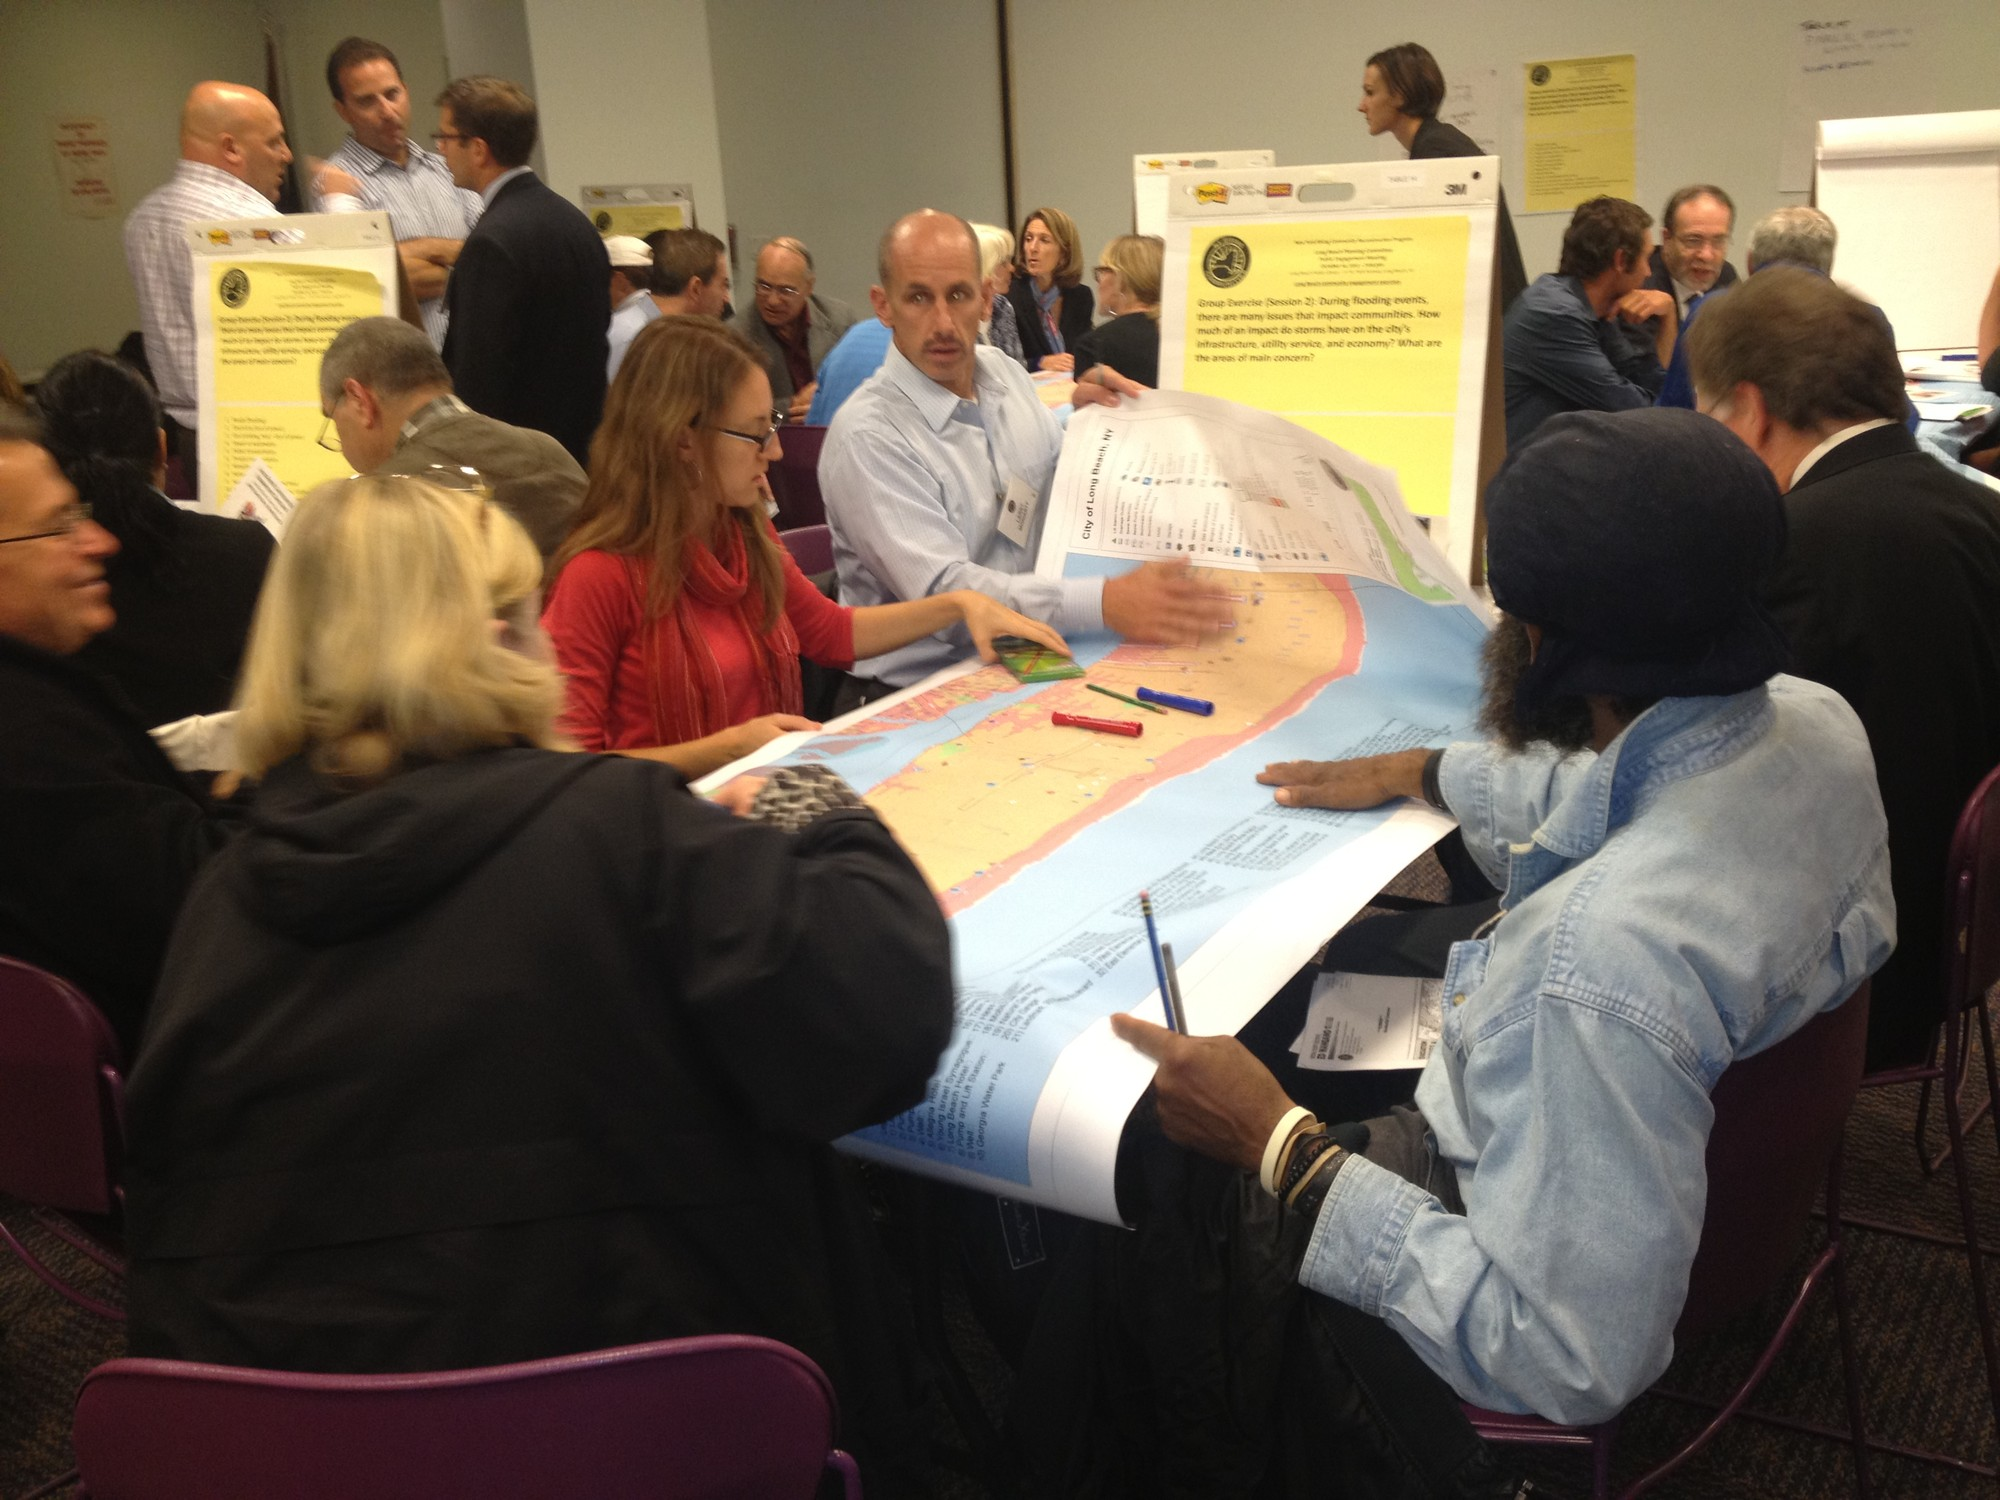 Residents discussed a number of long-term rebuilding and economic development strategies.